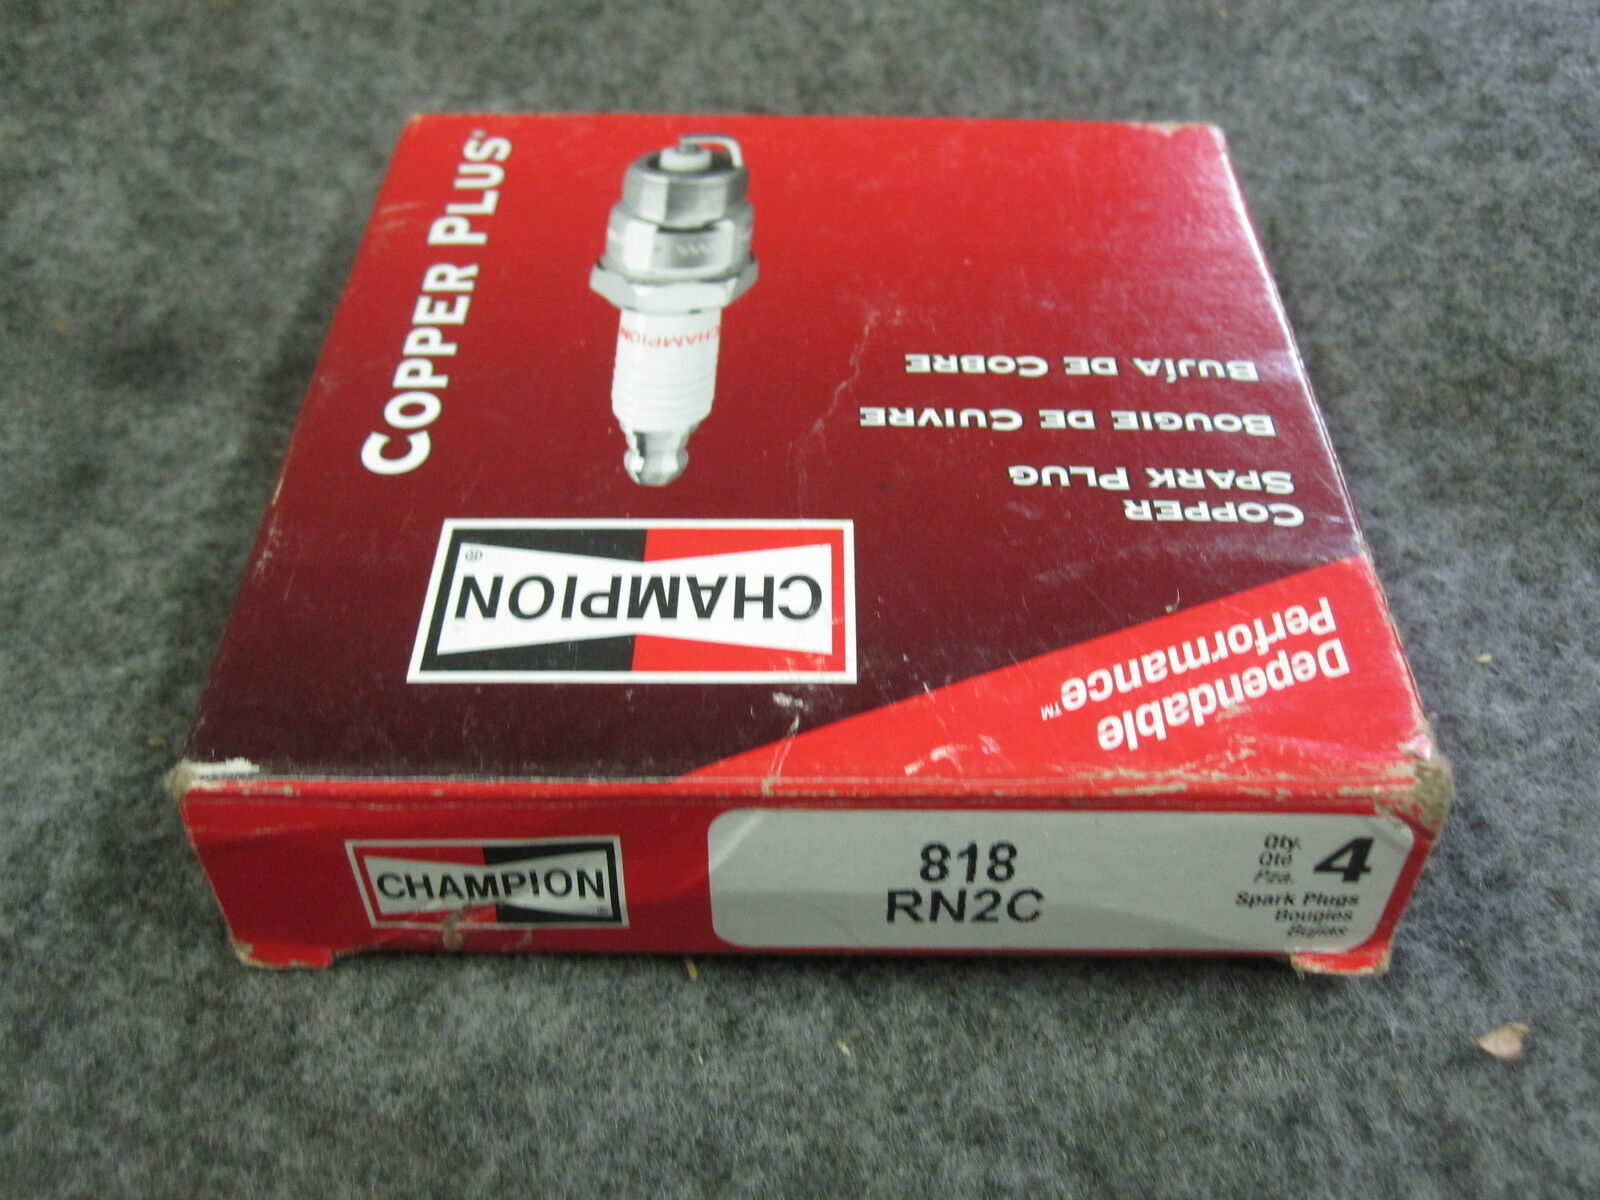 4 CHAMPION SPARK PLUGS RN2C, STOCK # 818